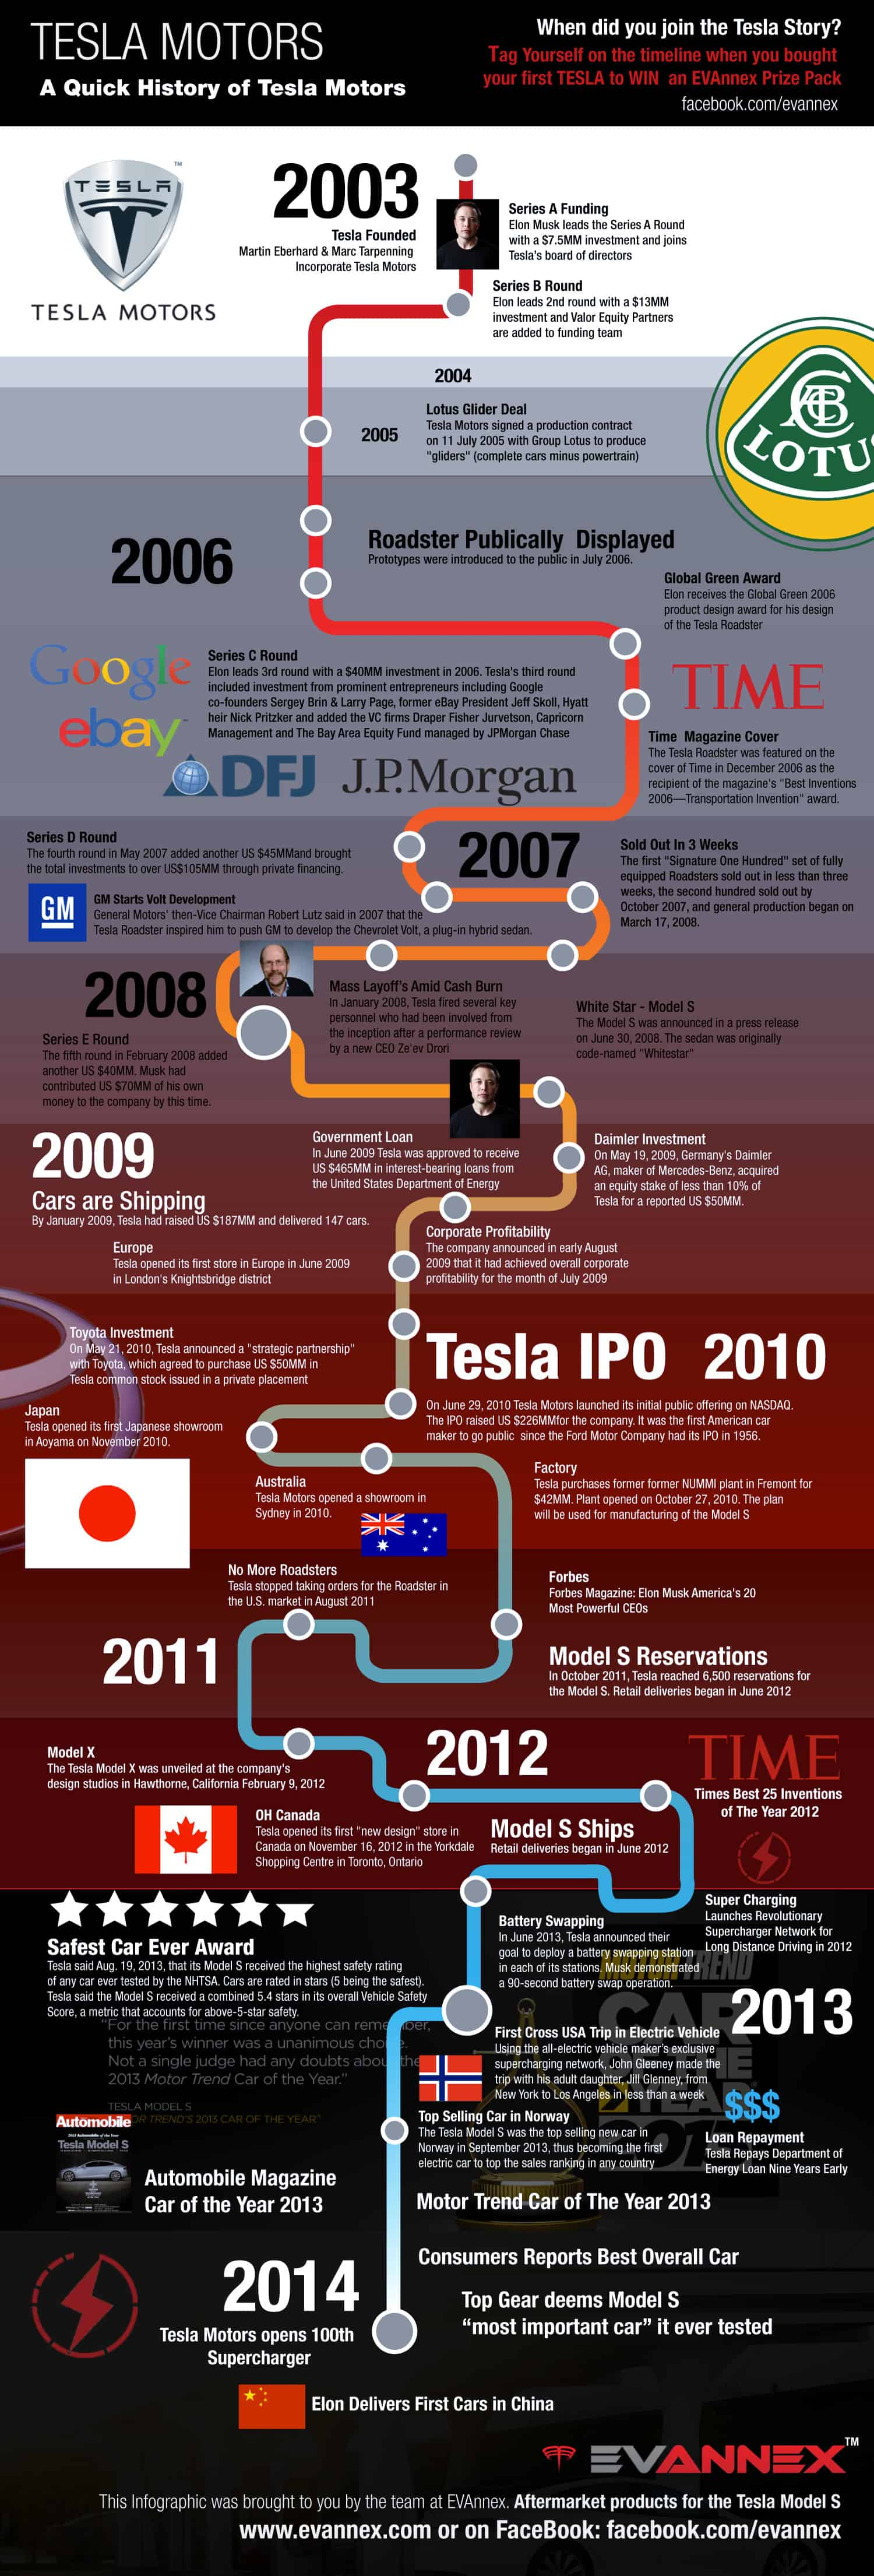 A Quick History of Tesla Motors | Daily Infographic